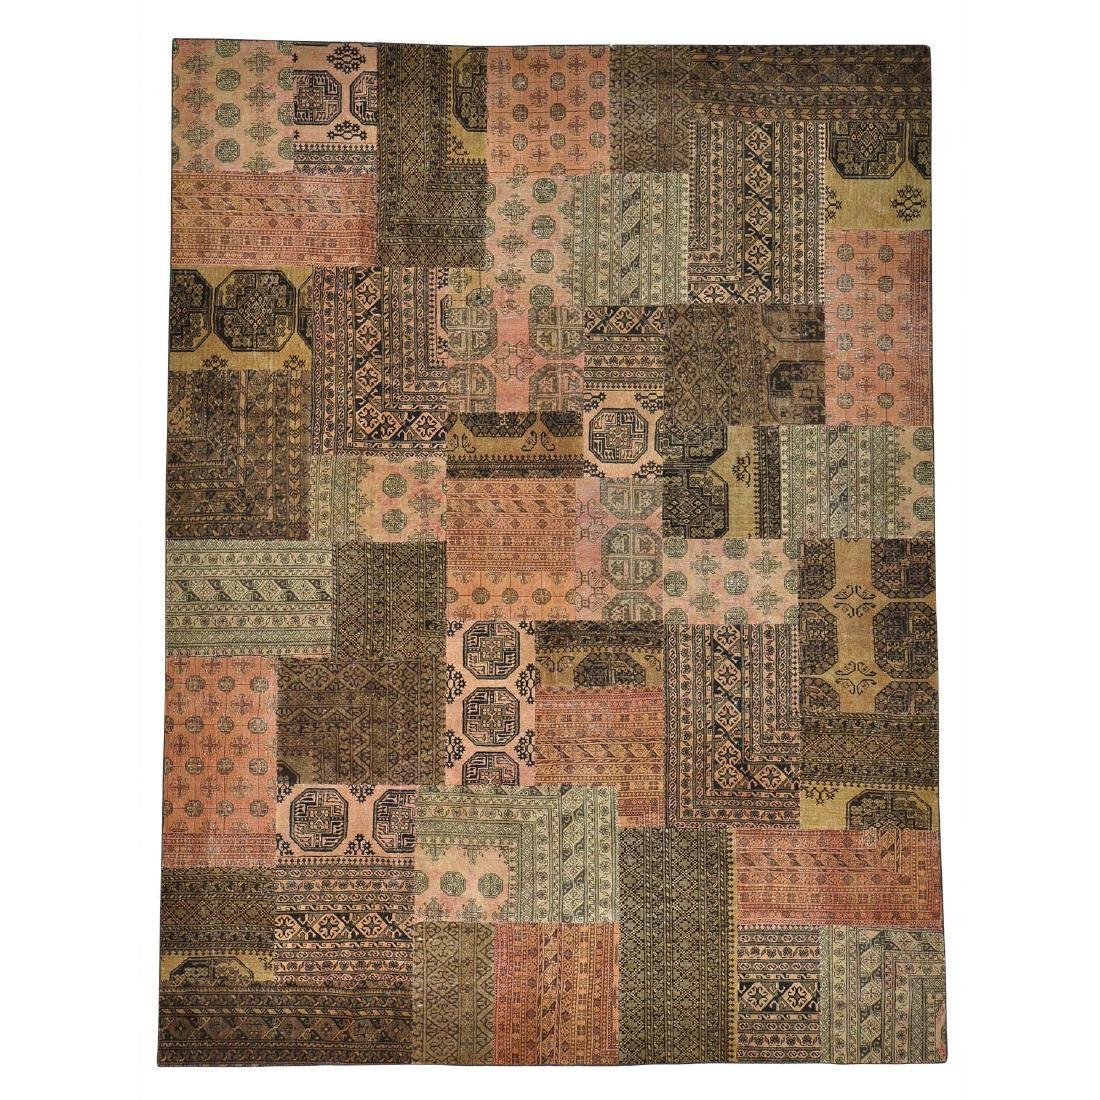 Pure Wool Afghan Patchwork Hand Knotted Rug 9x12